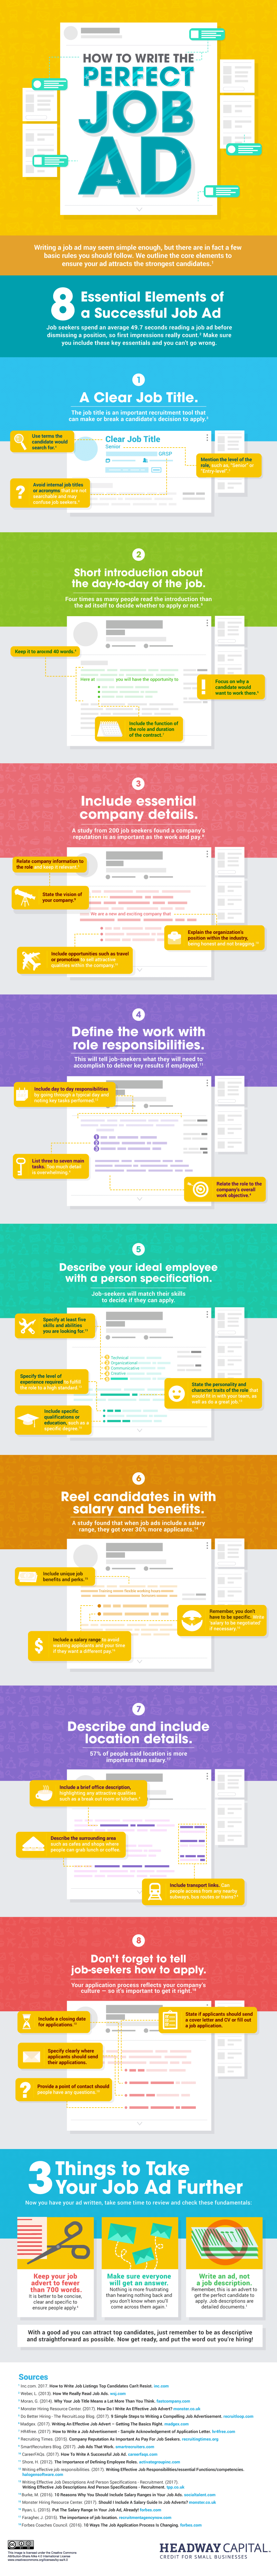 Finding the Perfect Recruit Starts with Writing the Perfect Job Ad - Infographic